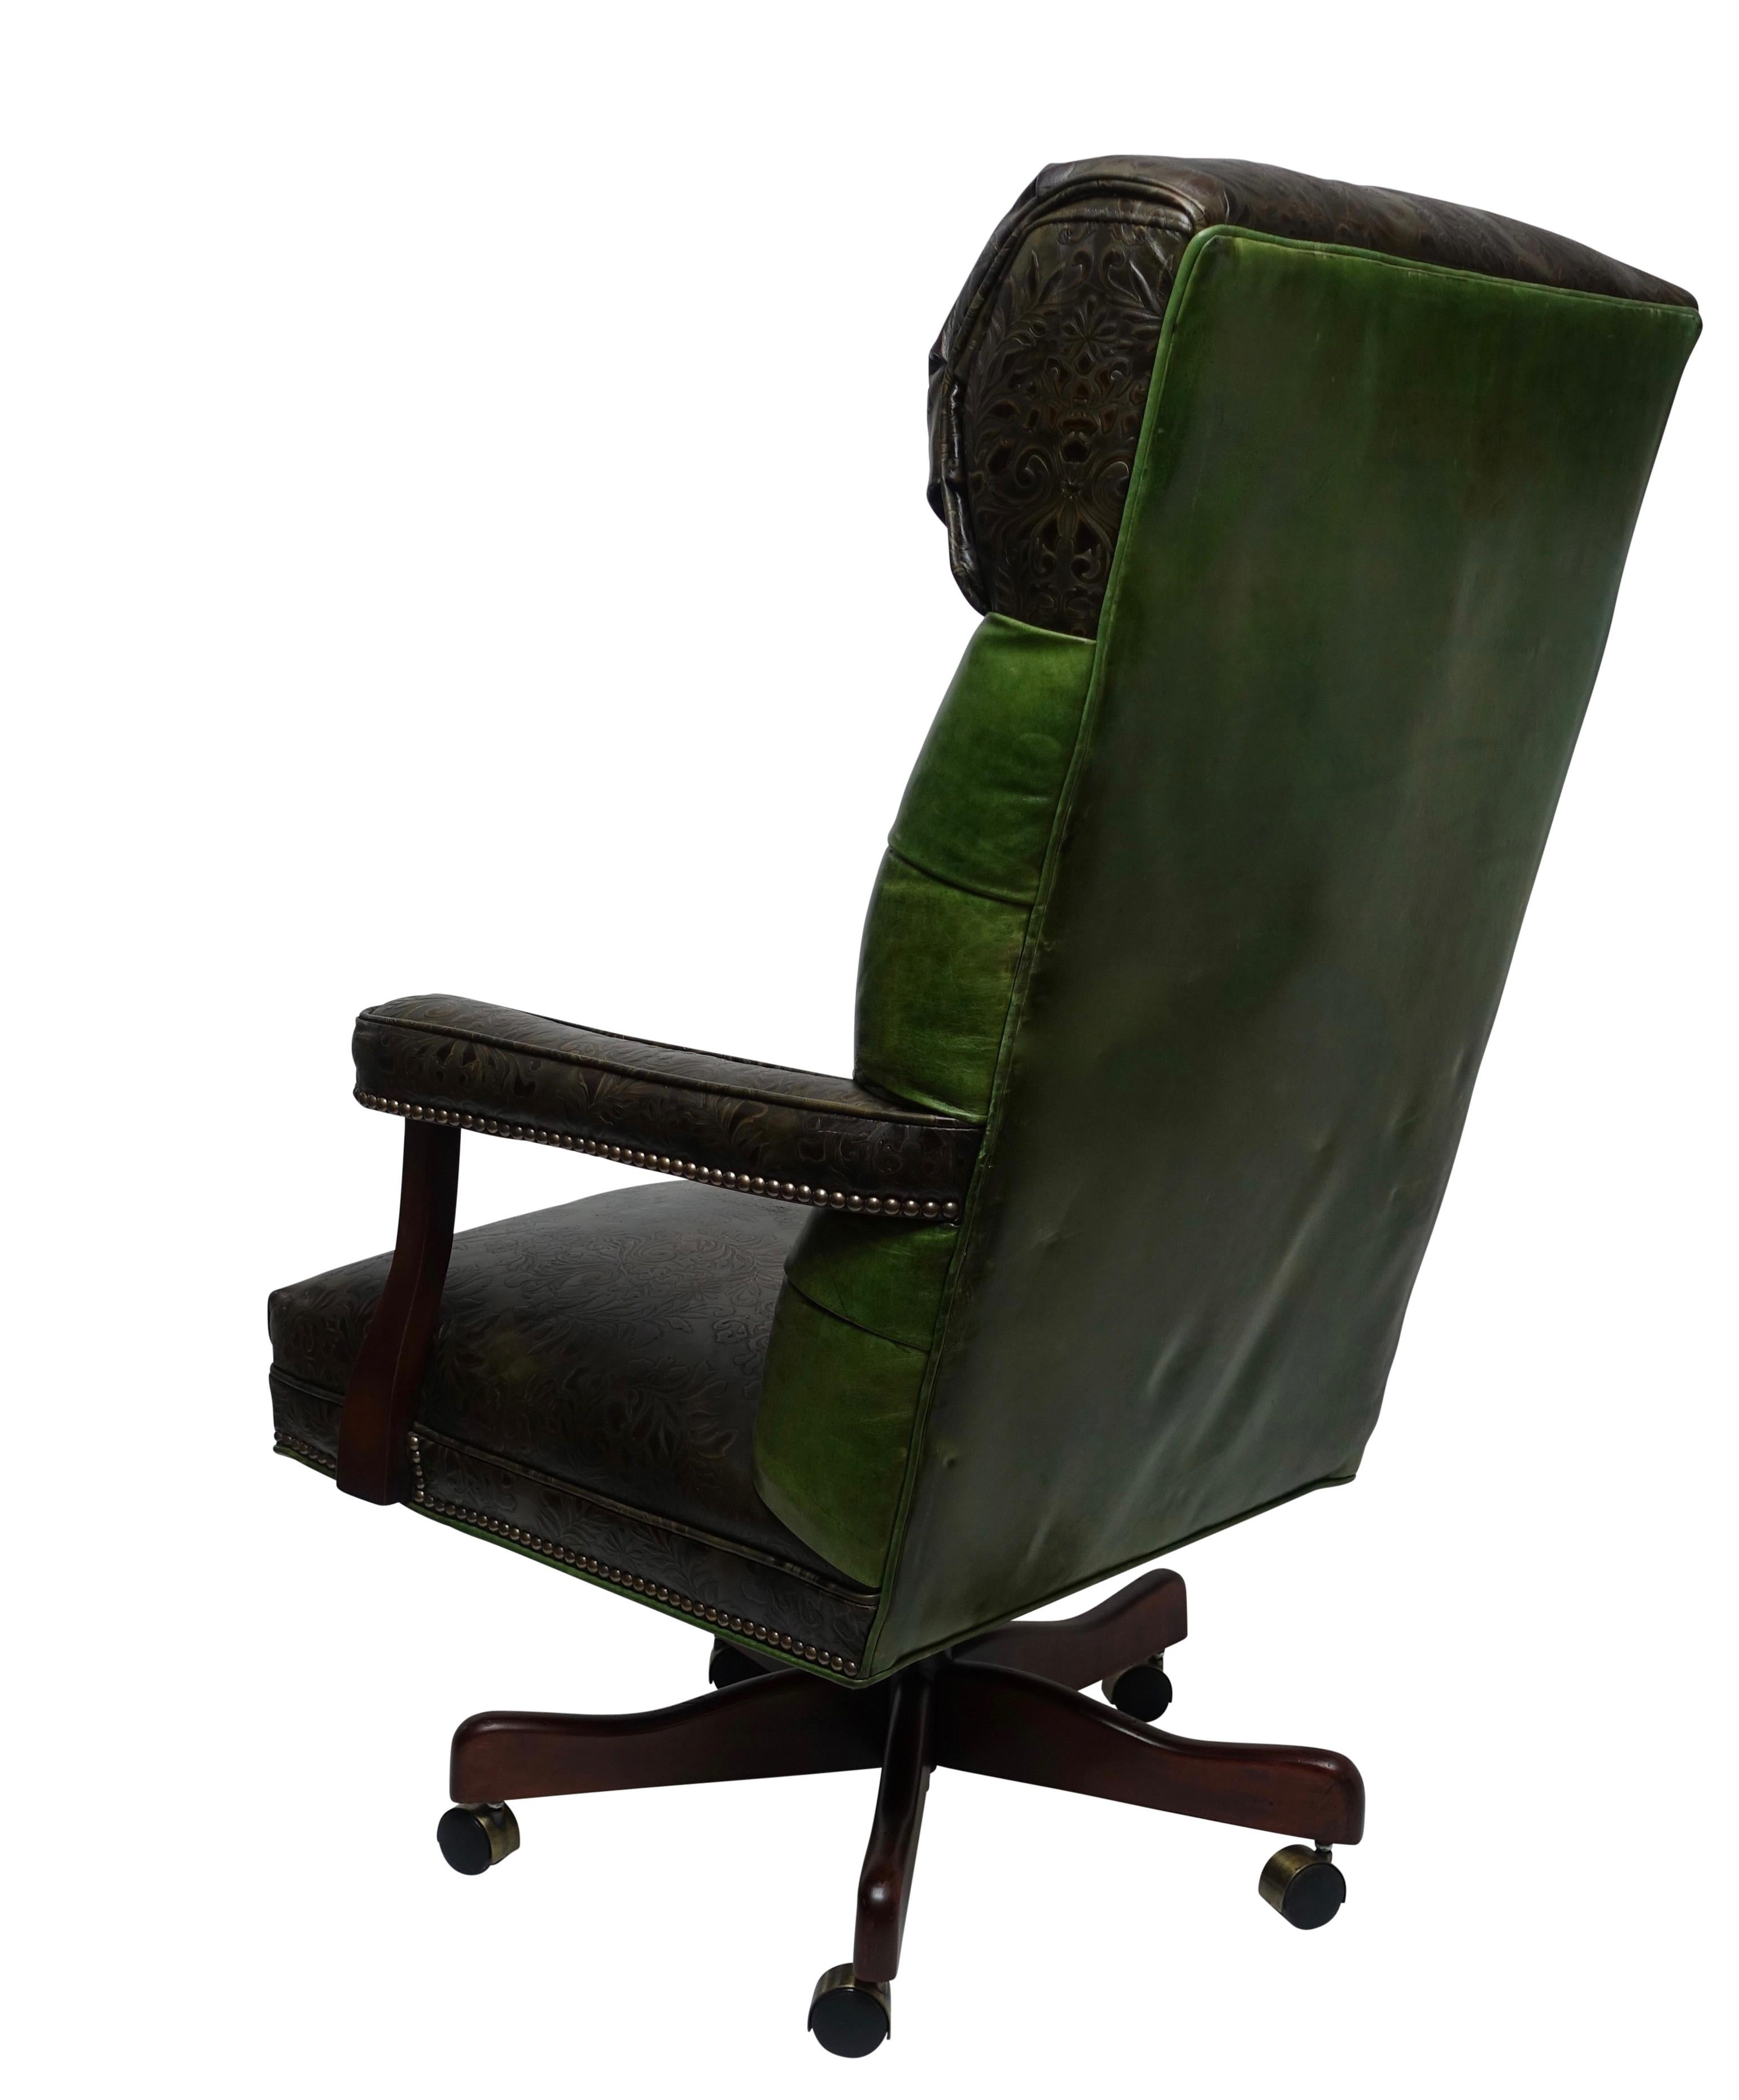 Vintage Executive Leather Office Desk Library Chair